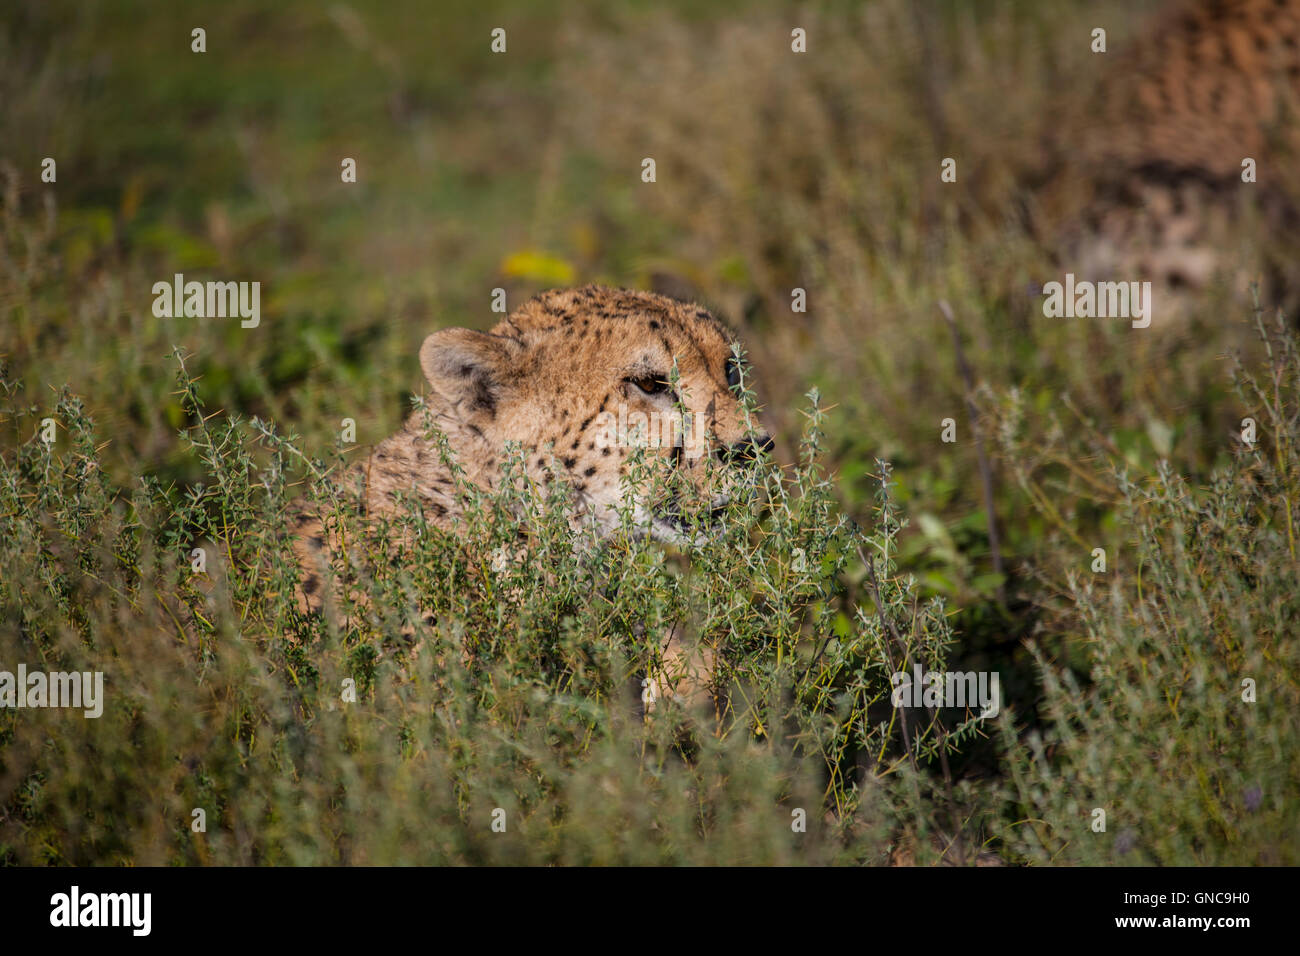 Head of a cheetah Acinonyx jubatus visible above the tall grassland as it silently watches its surroundings - Stock Image